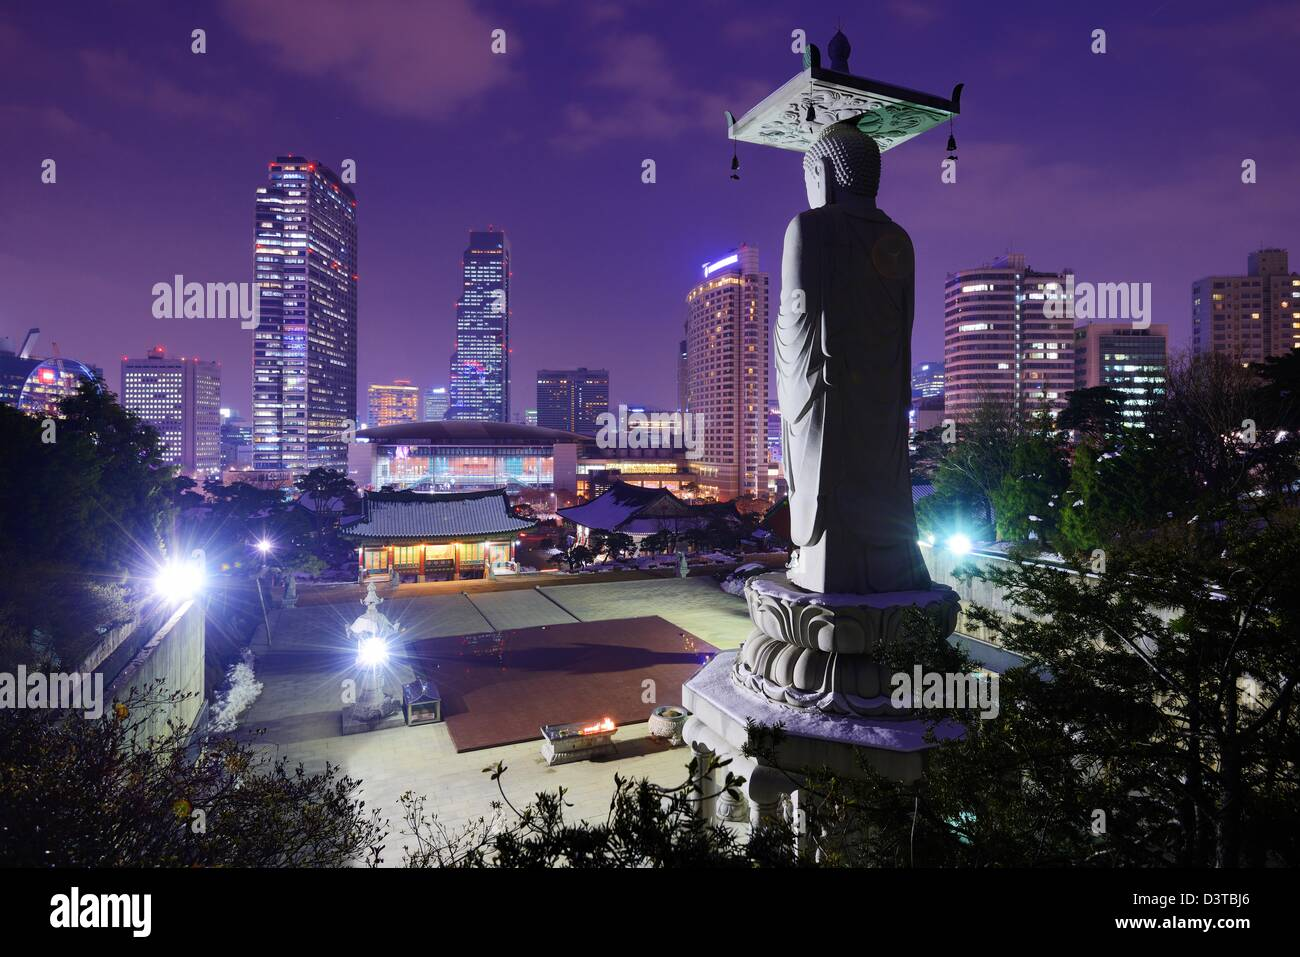 Bongeunsa Temple in the Gangnam District of Seoul, Korea. - Stock Image